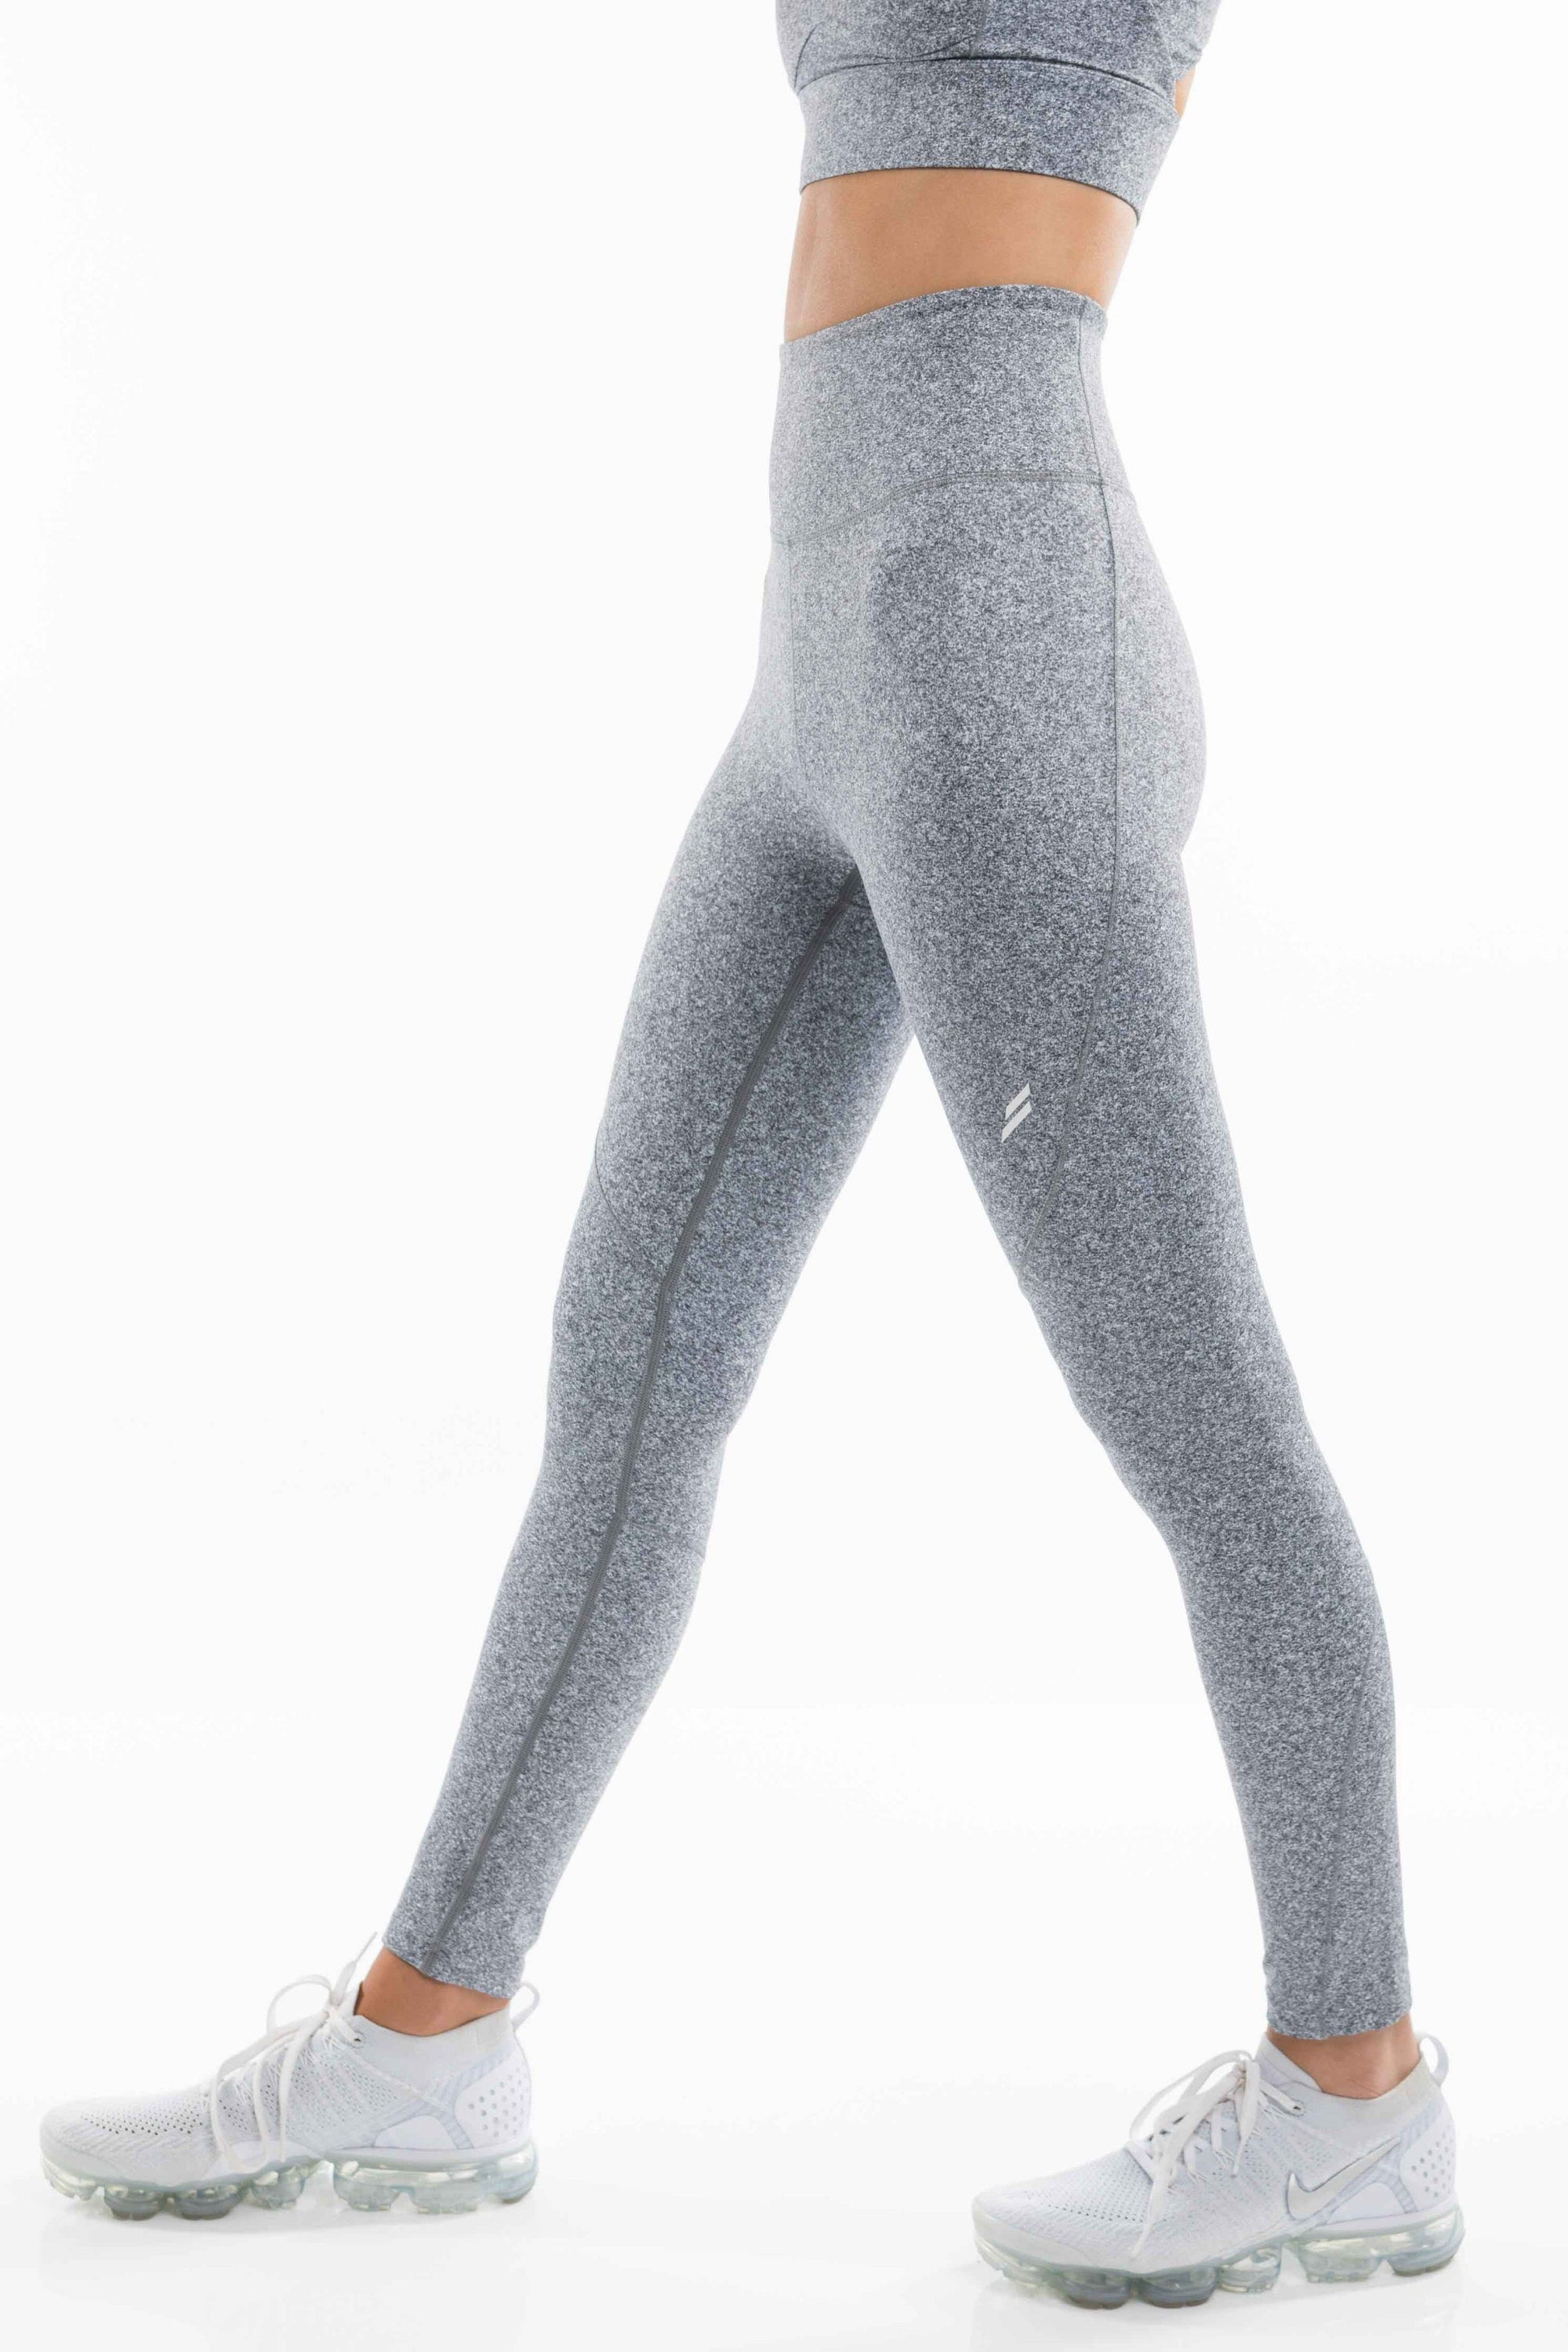 DYE Excel Leggings - Marl Grey